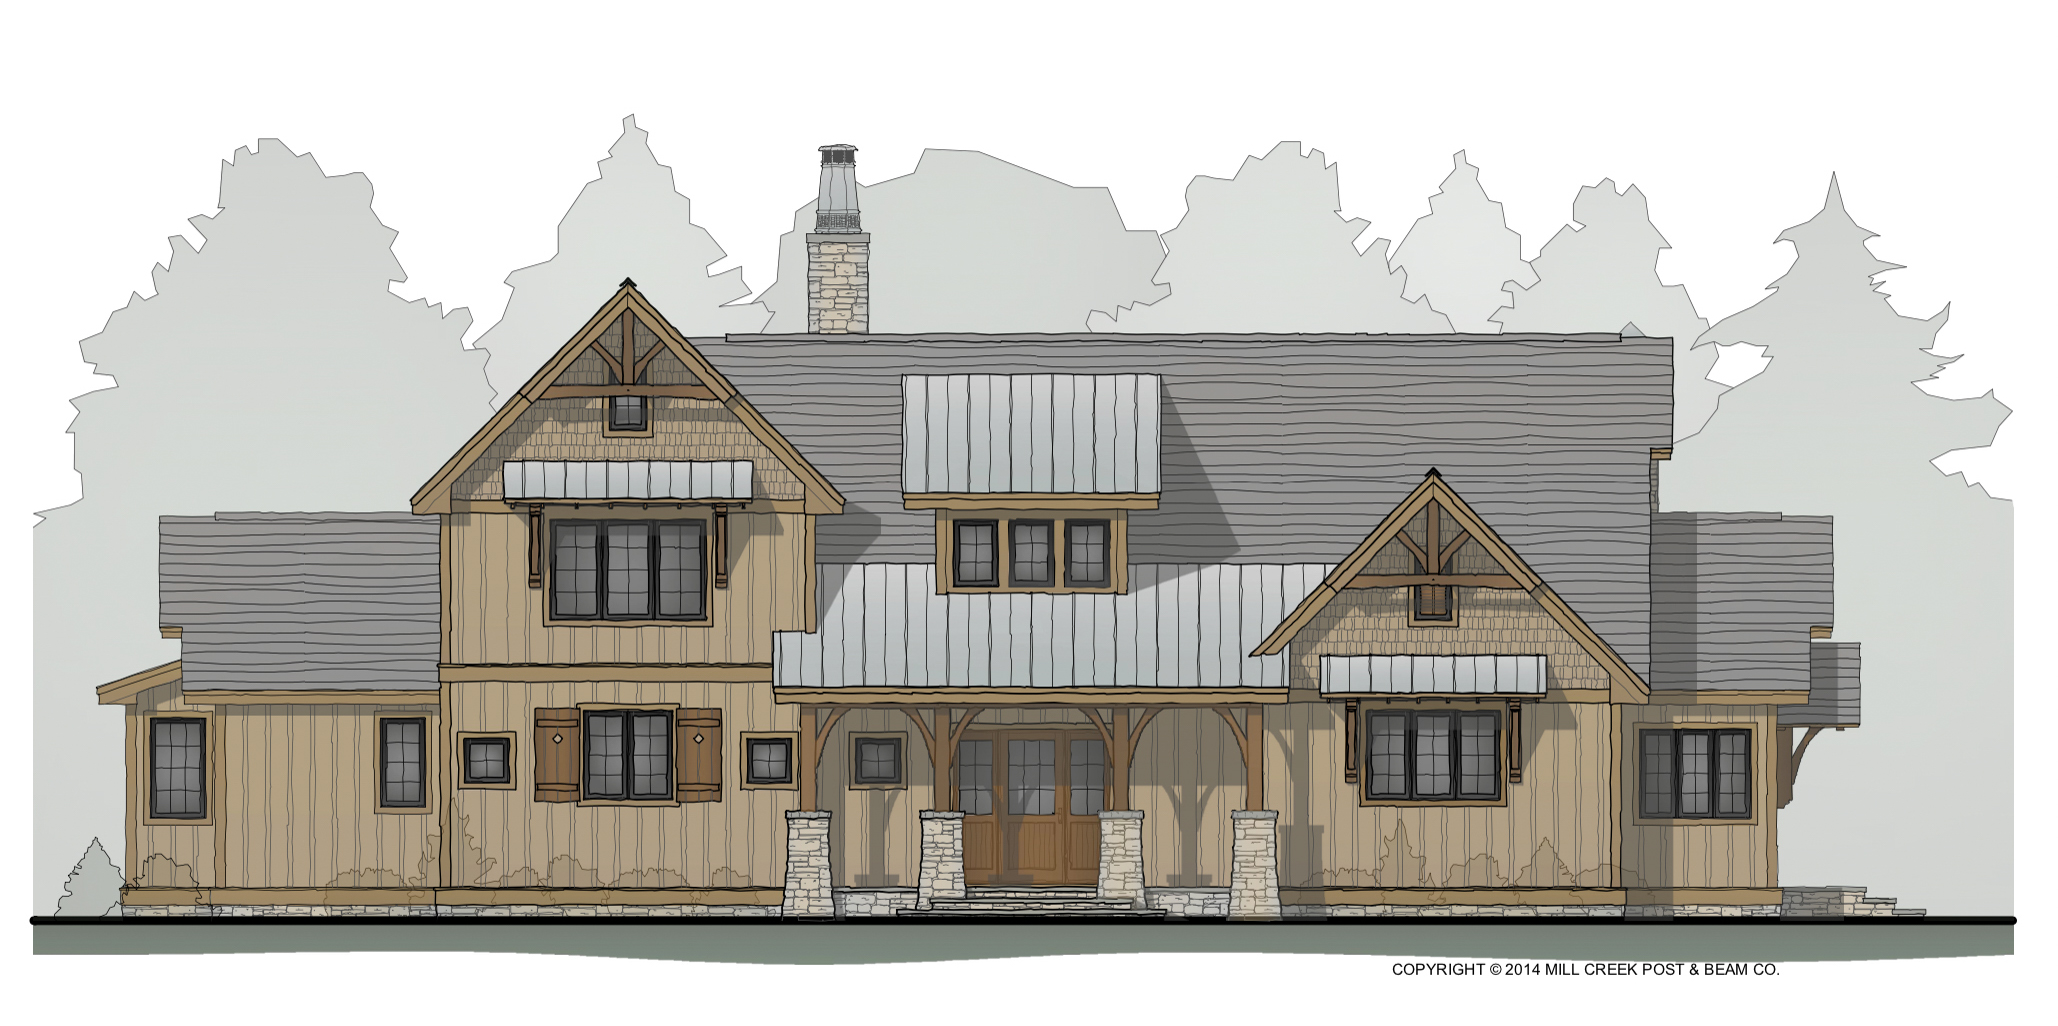 Timber Frame Homes By Mill Creek Post & Beam